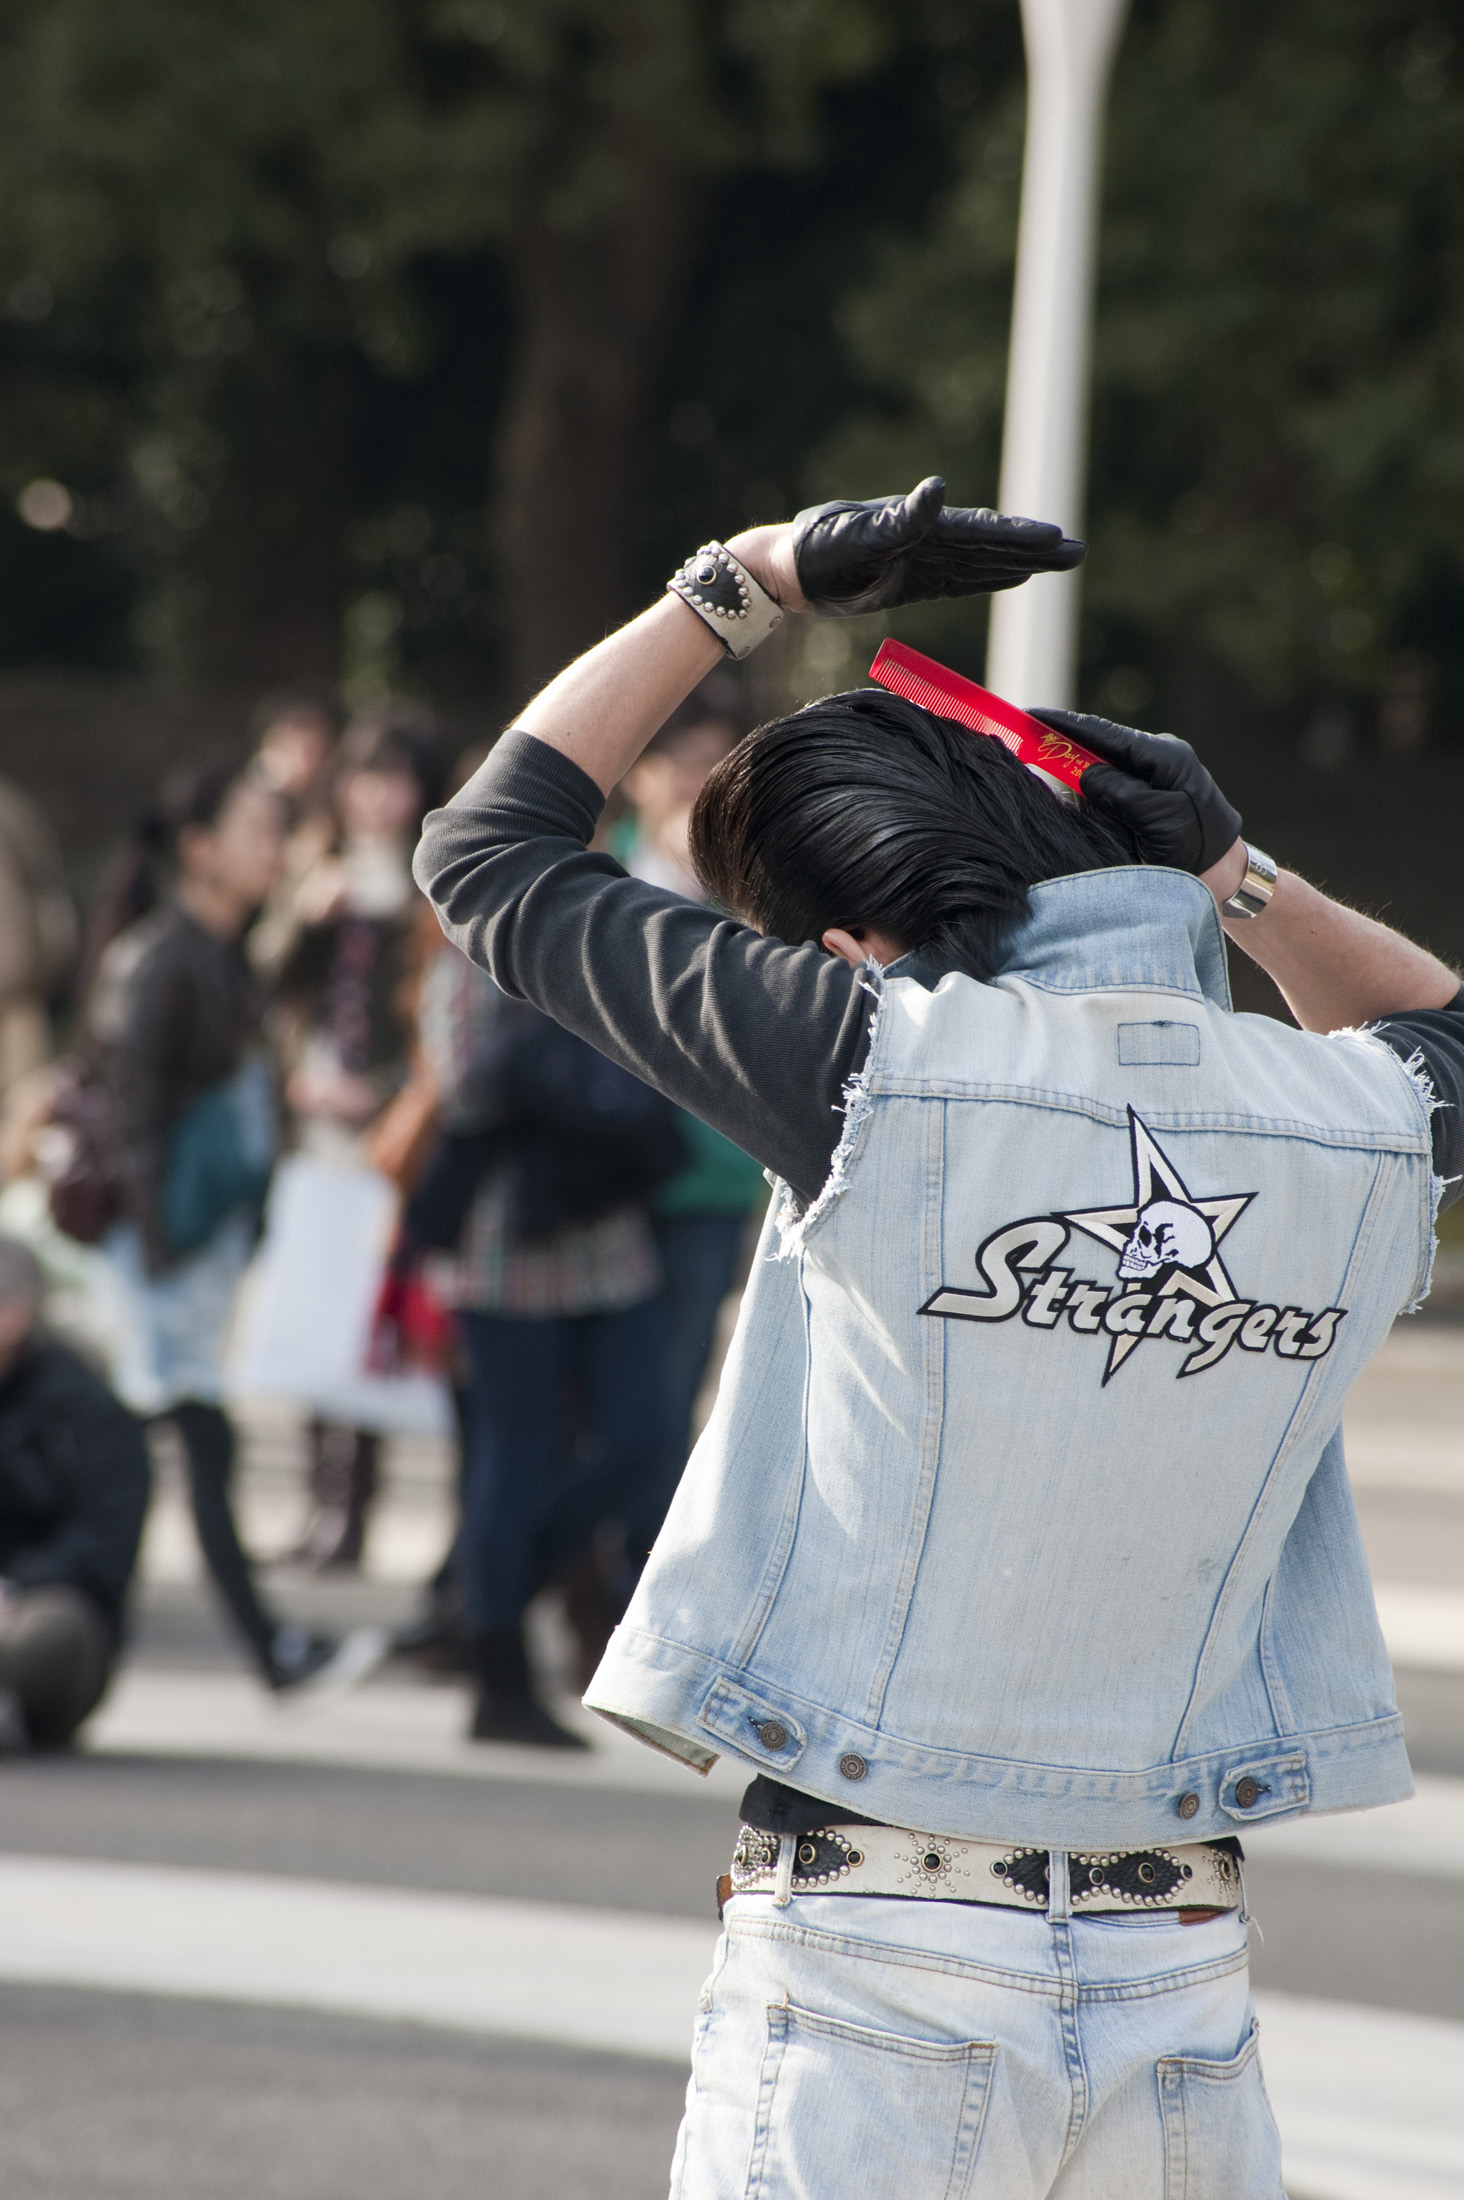 A rocker in Tokyos Yoyogi Park tends his hair - not model released